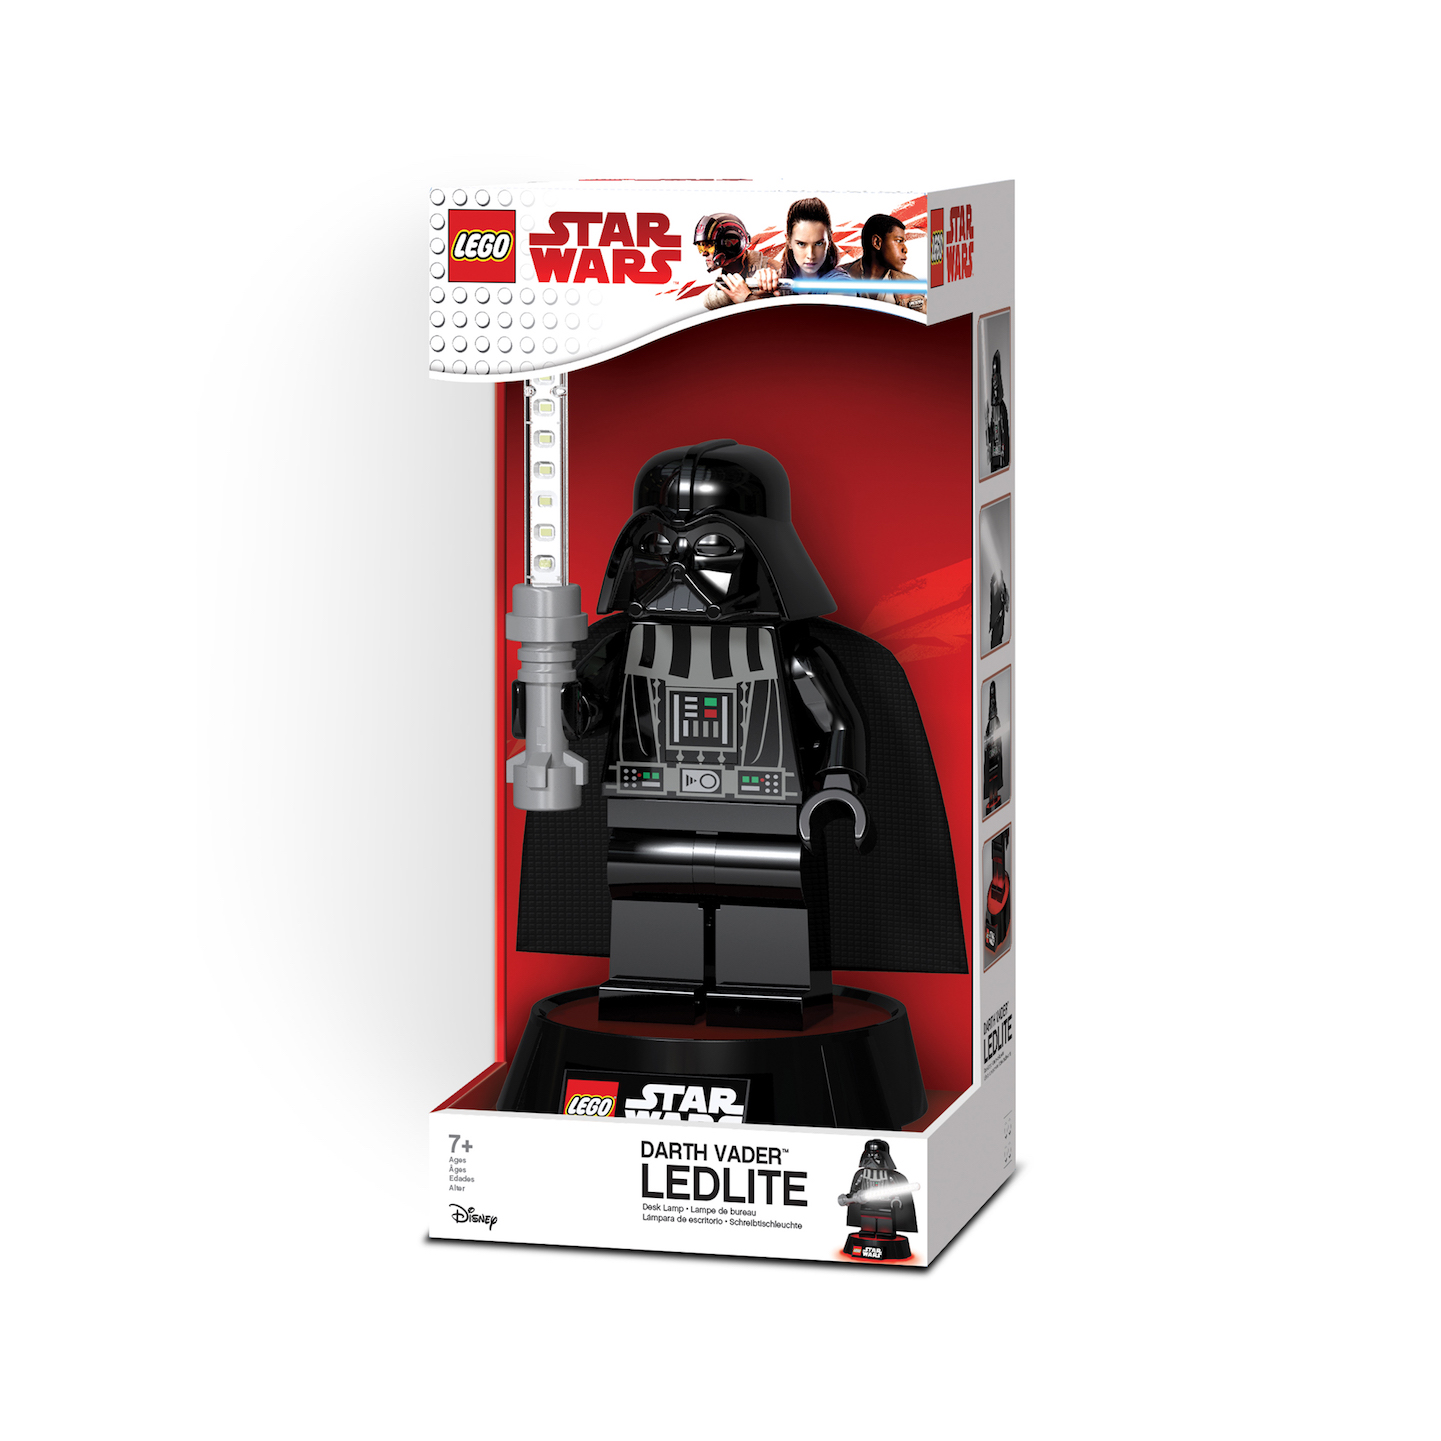 TLJ (ANH) Darth Vader Lego Desk Lamp 1